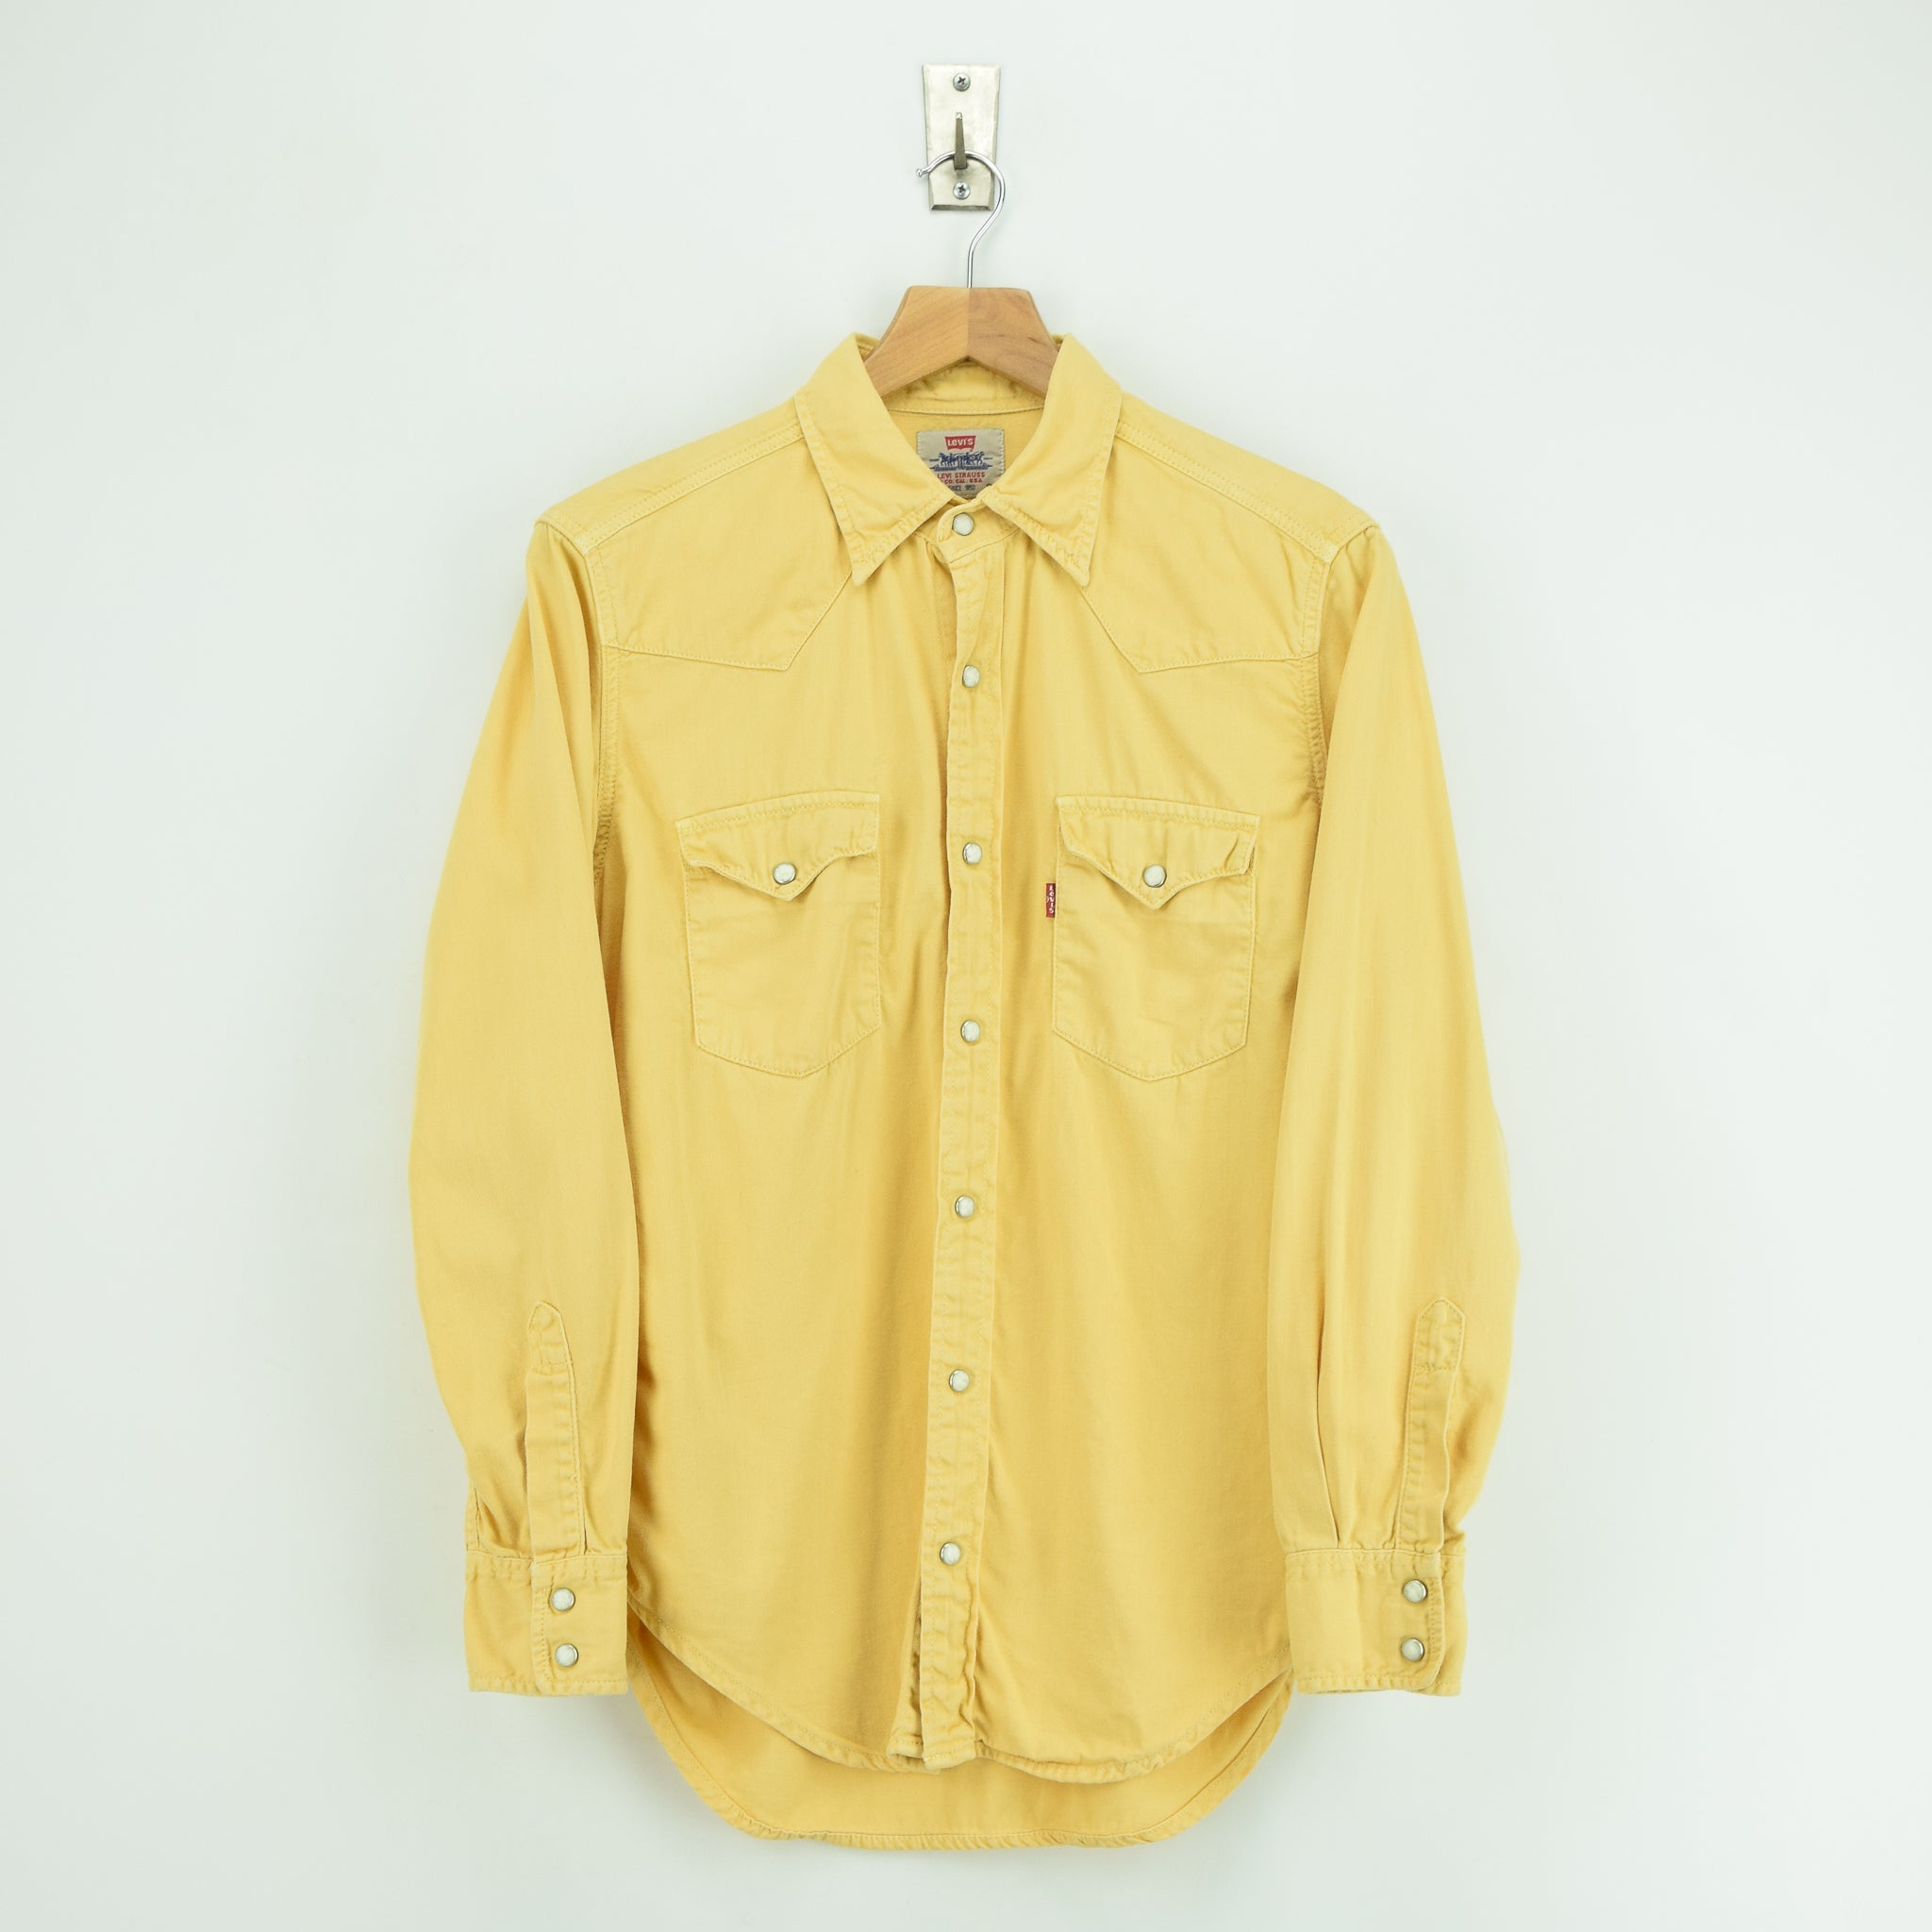 Vintage Levi Red Tab Washed Yellow Cotton Western Cowboy Shirt S front